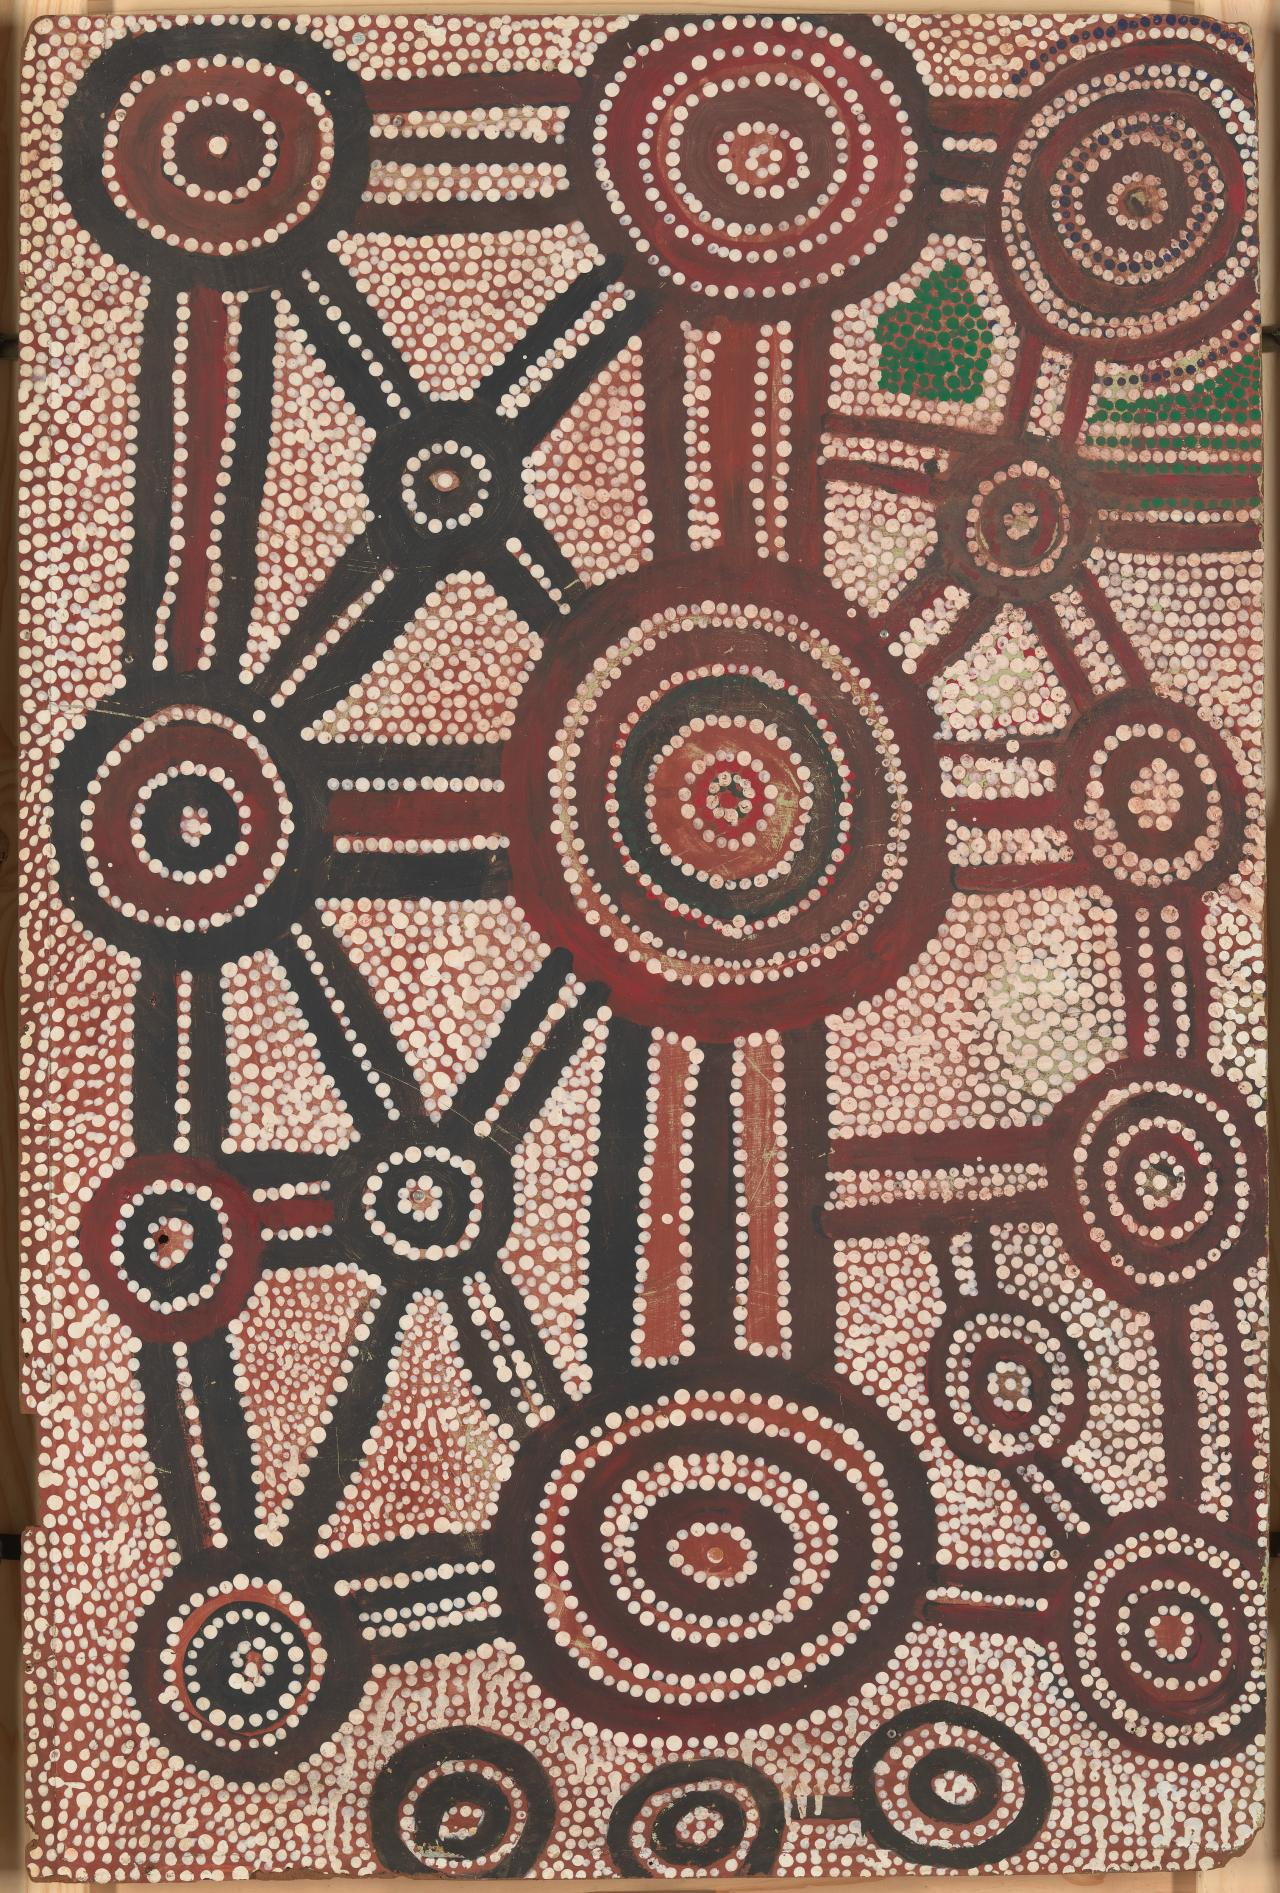 Yarla Jukurrpa (Bush potato Dreaming)